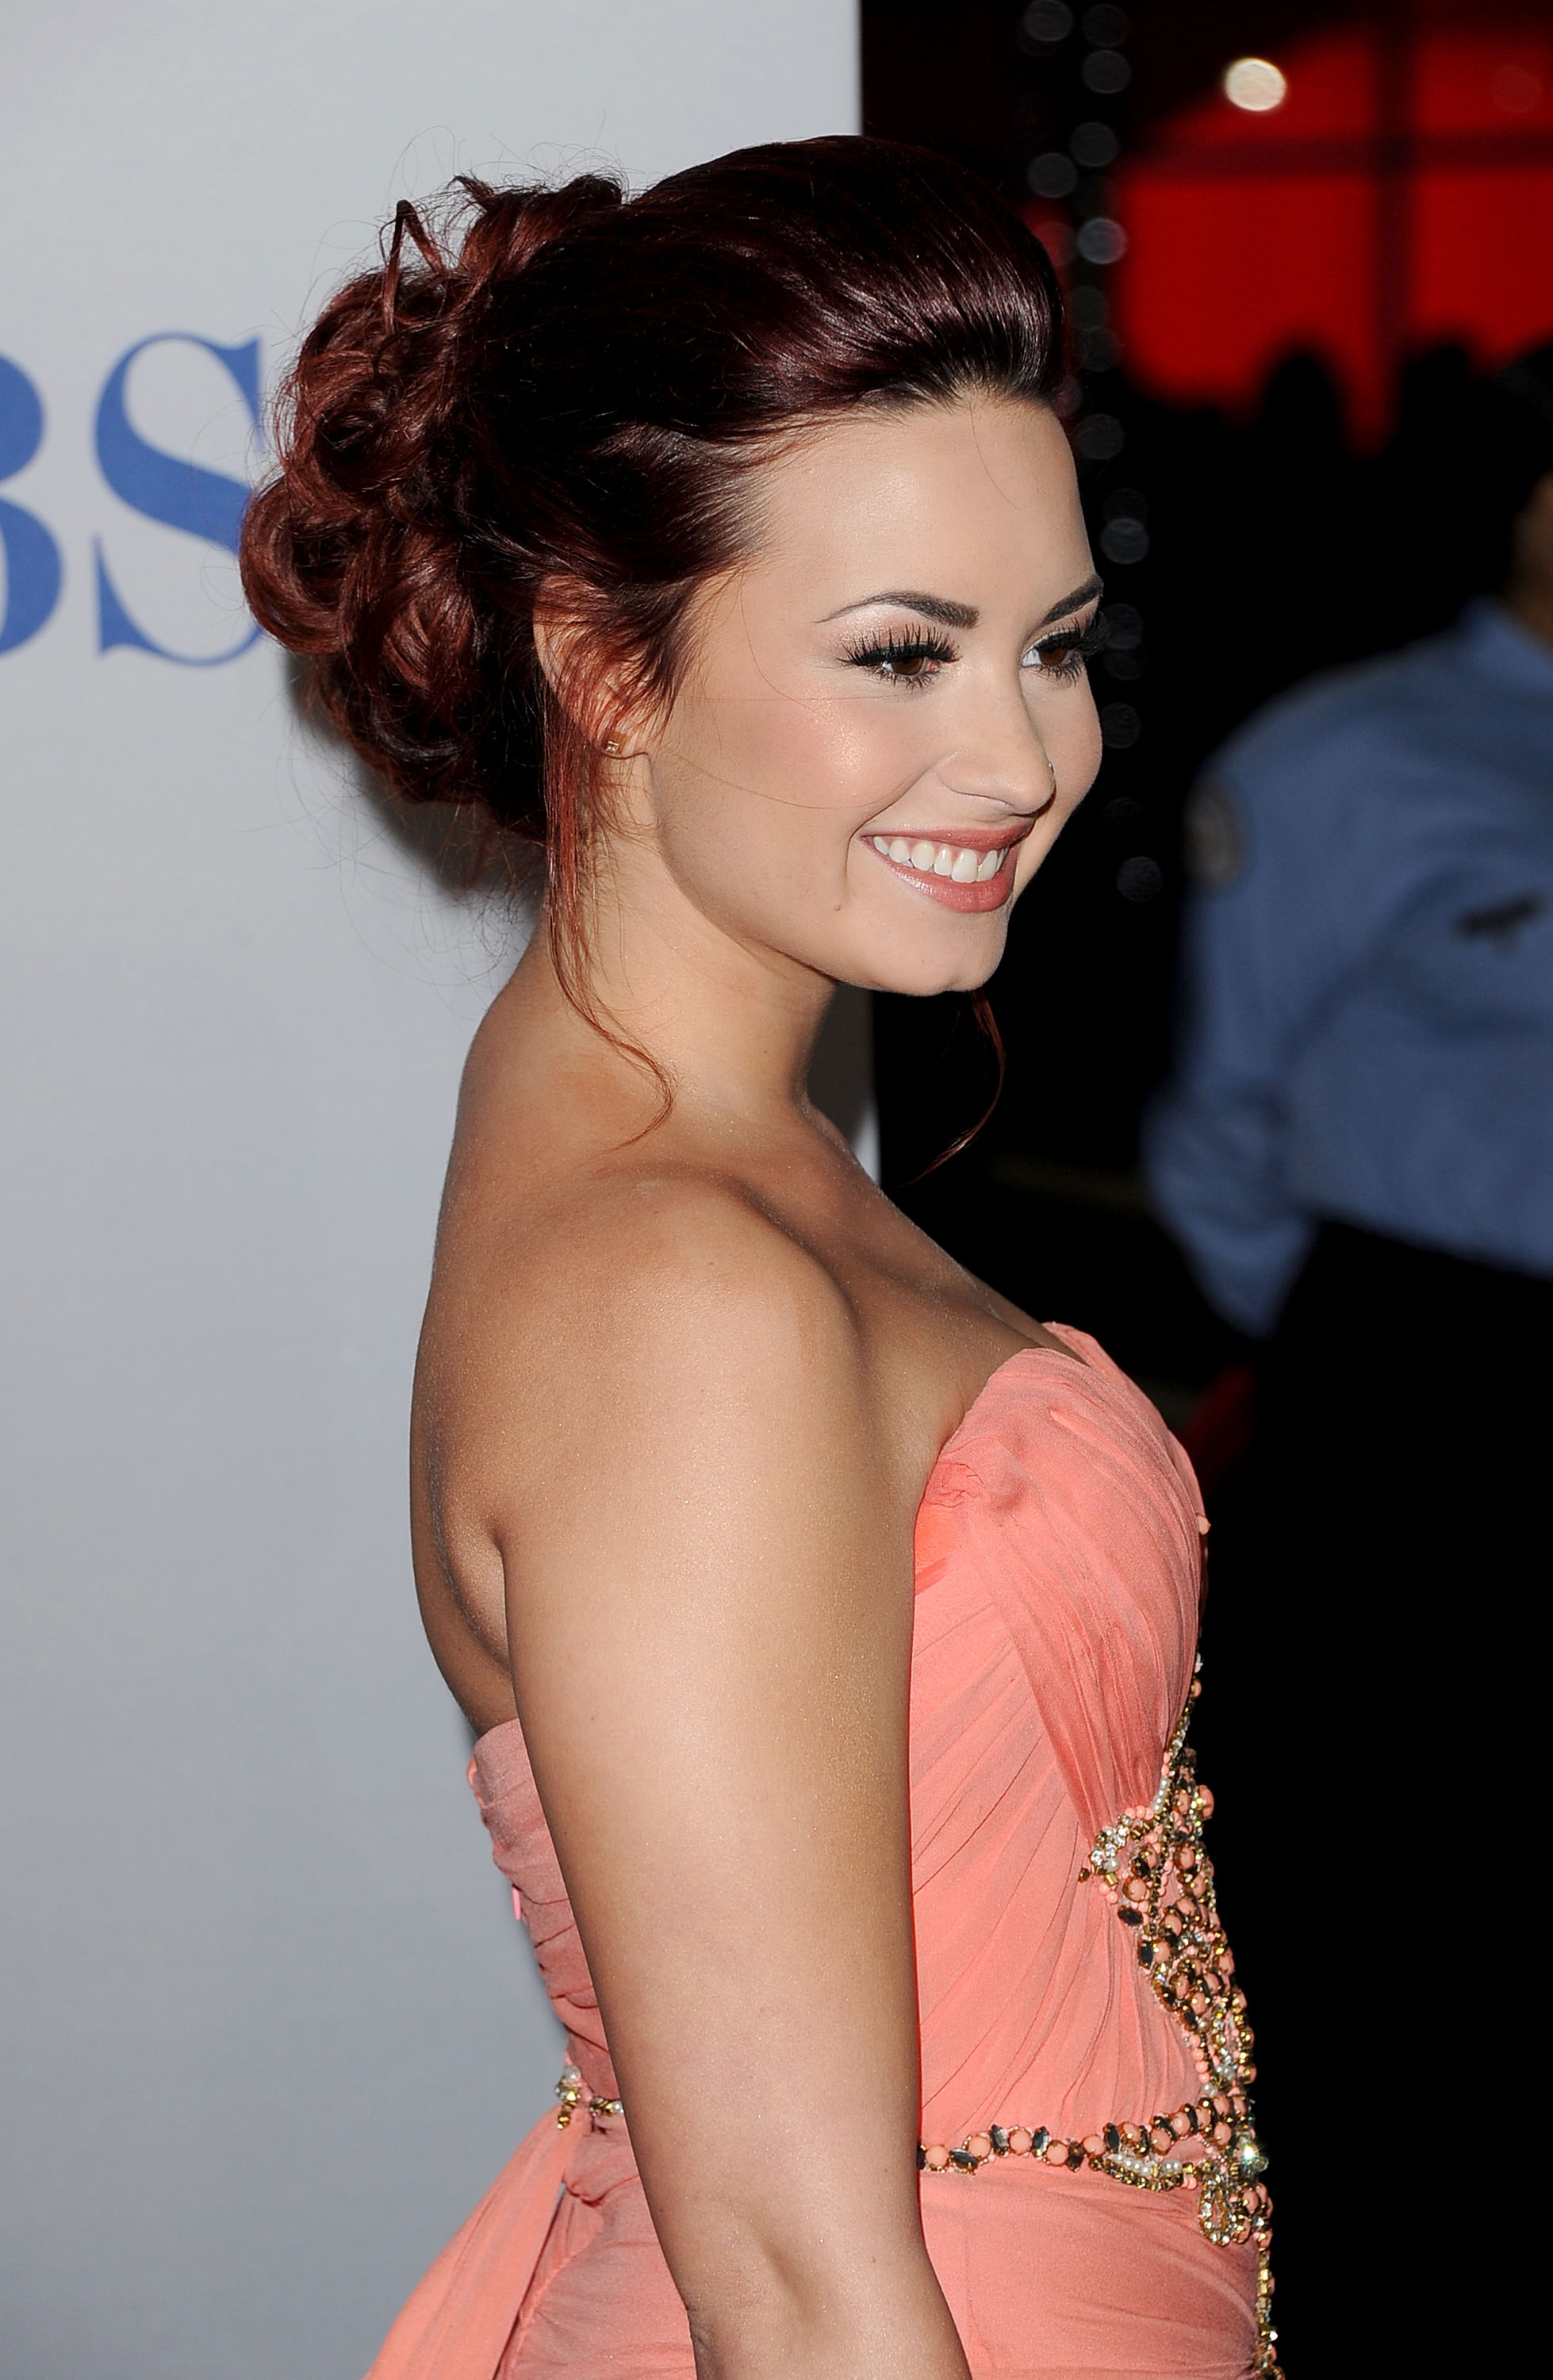 Demi Lovato arrived at the People's Choice Awards.